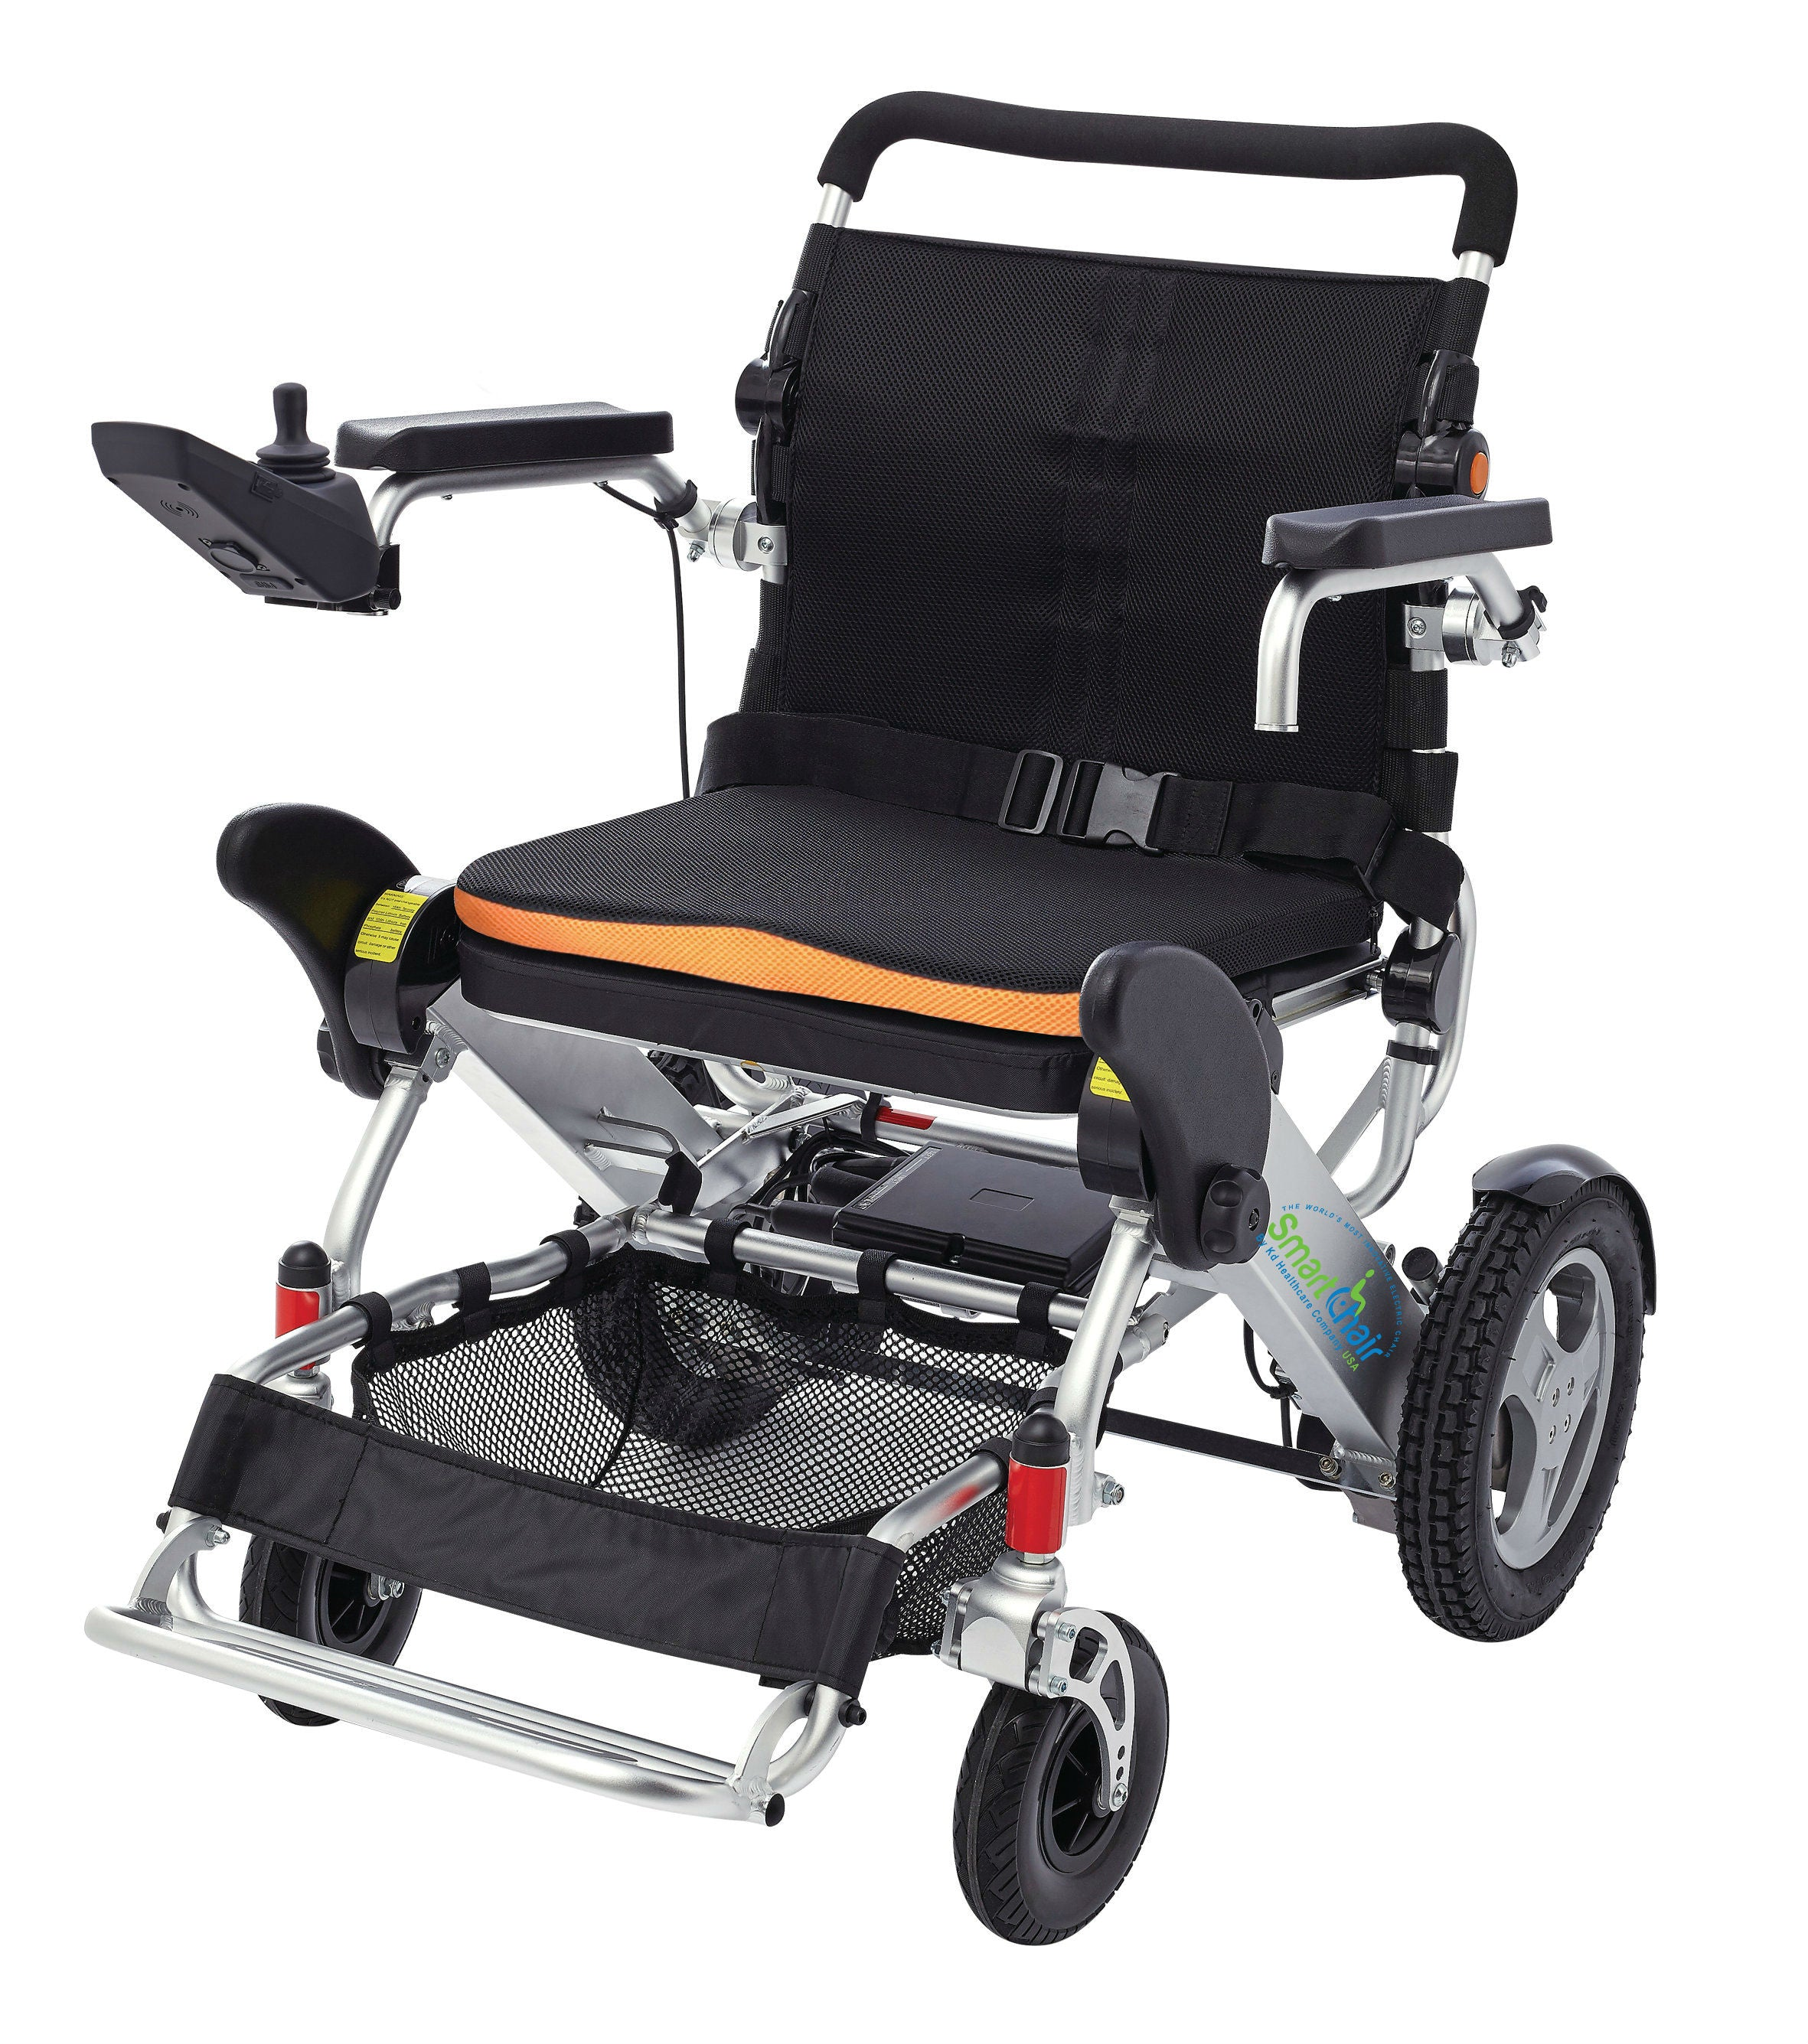 wheelchairs offers fans free sdmmvmv kd kayne west chair yahoo smart post finance to